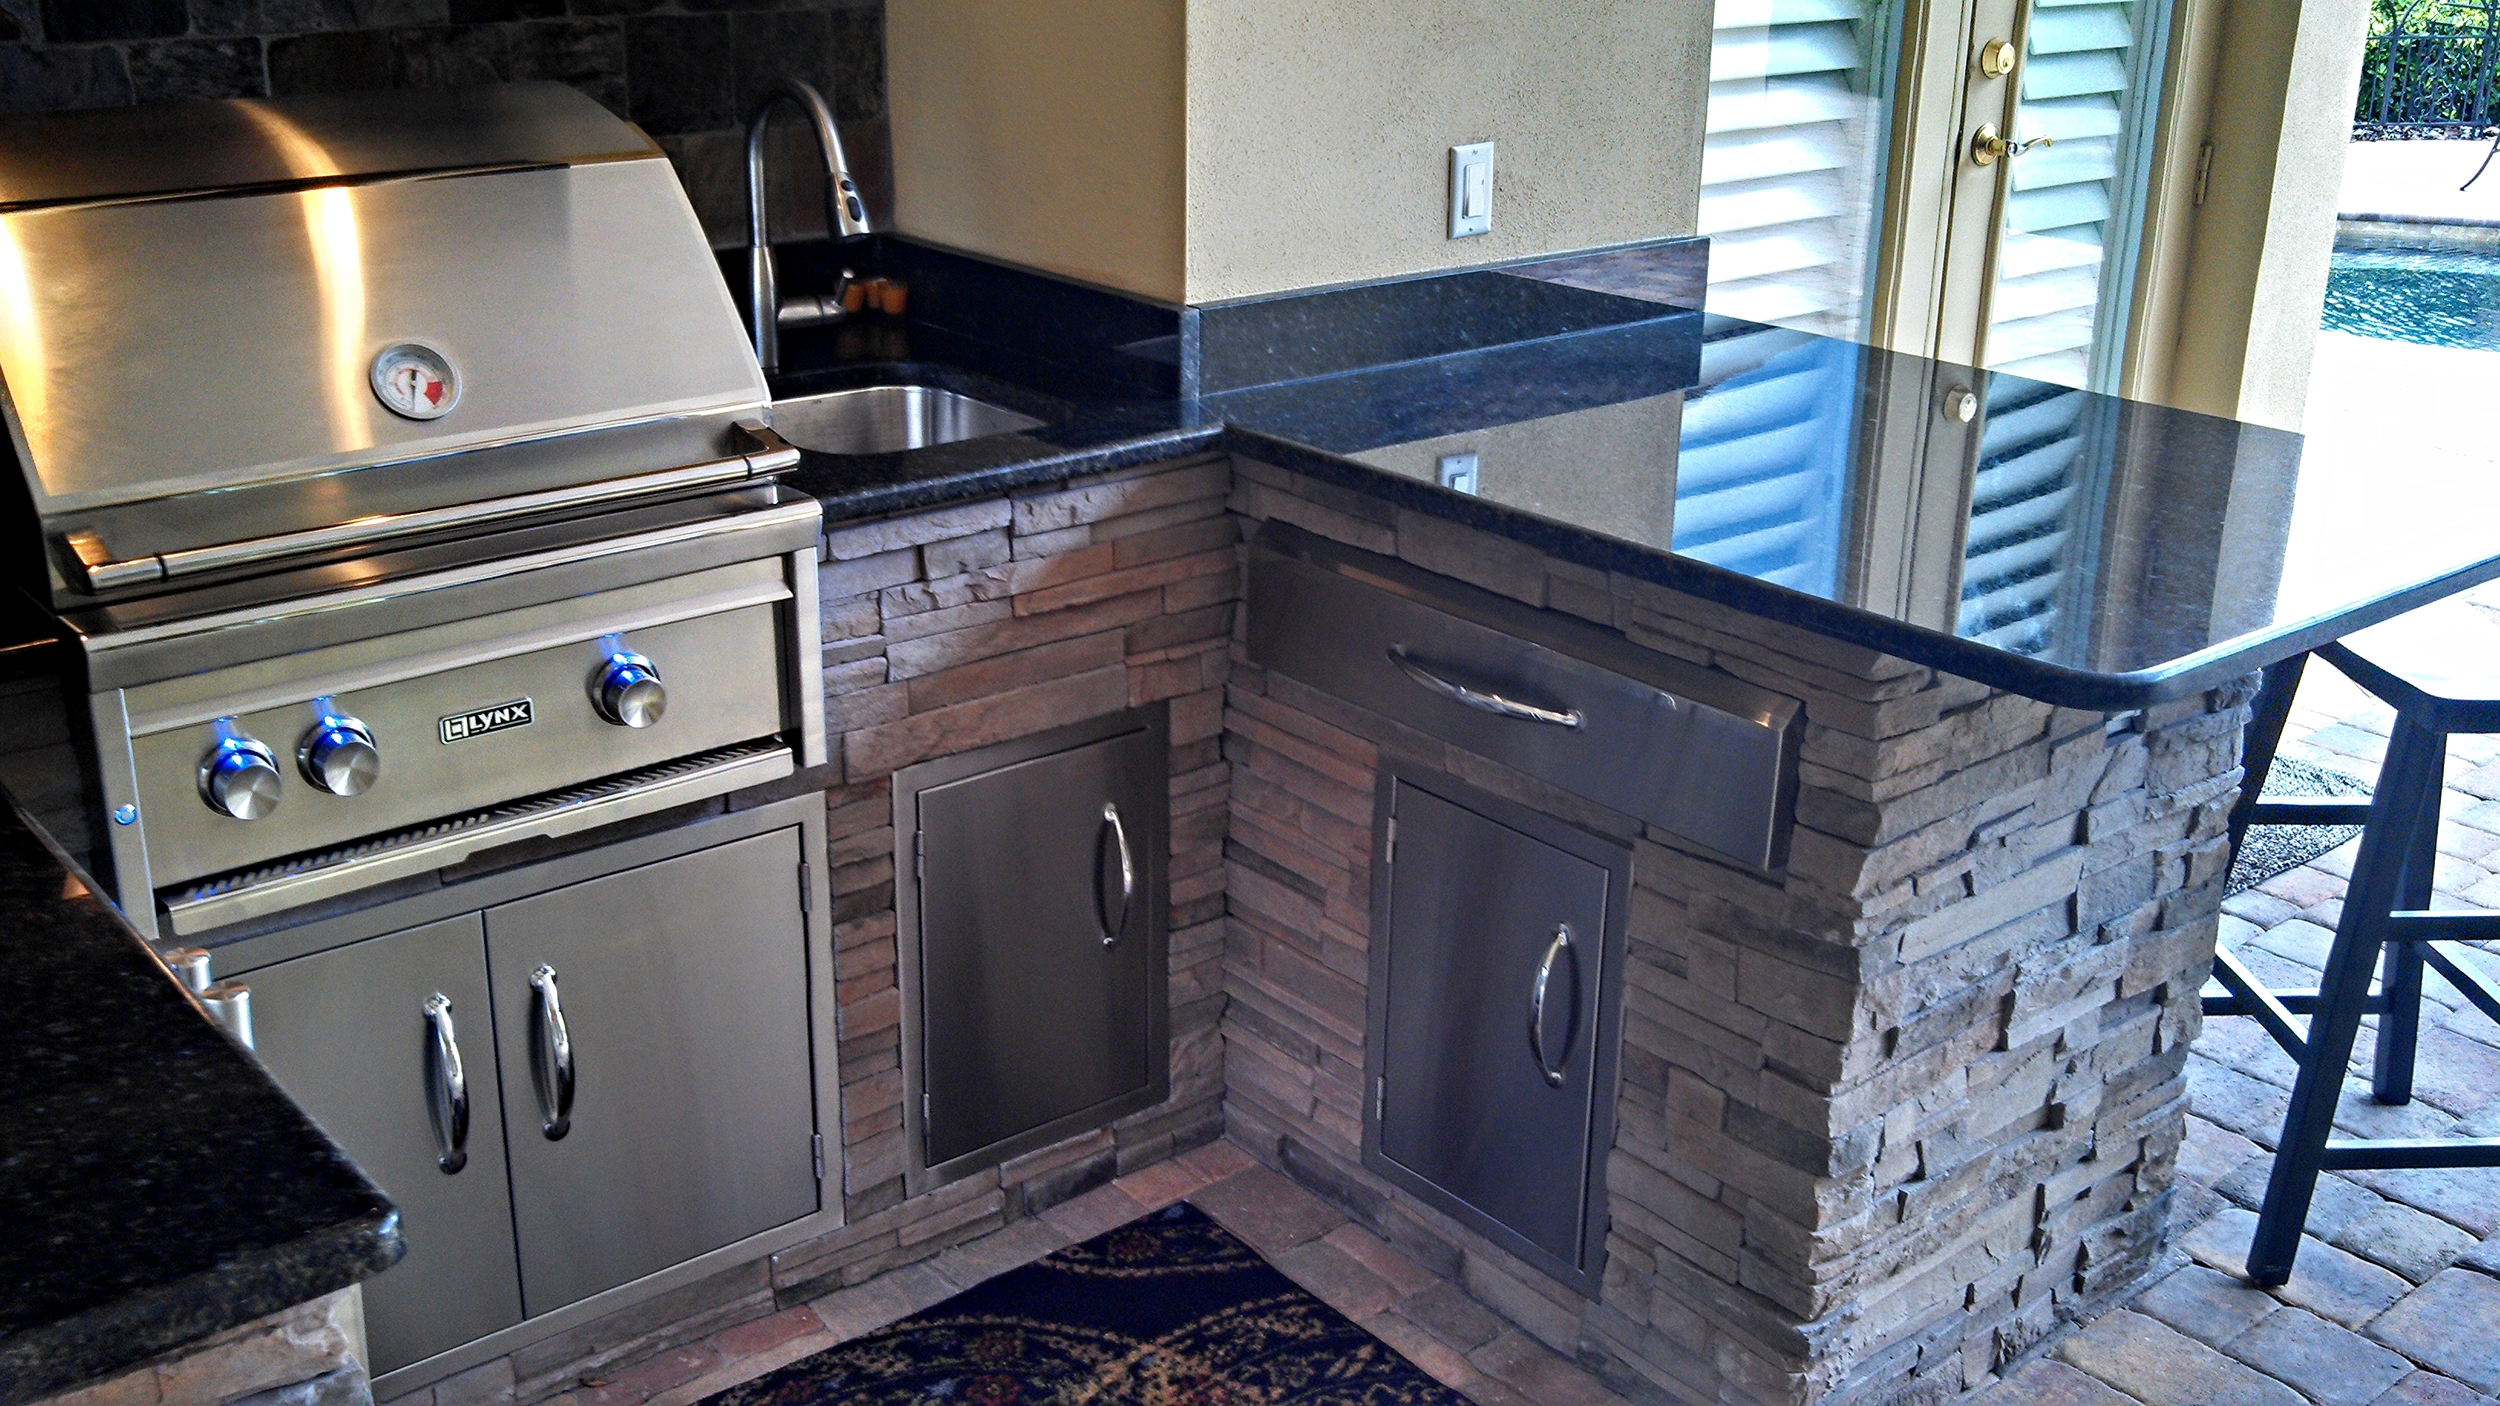 Plenty of storage and it looks like that Lynx Grill is ready to be put to use!